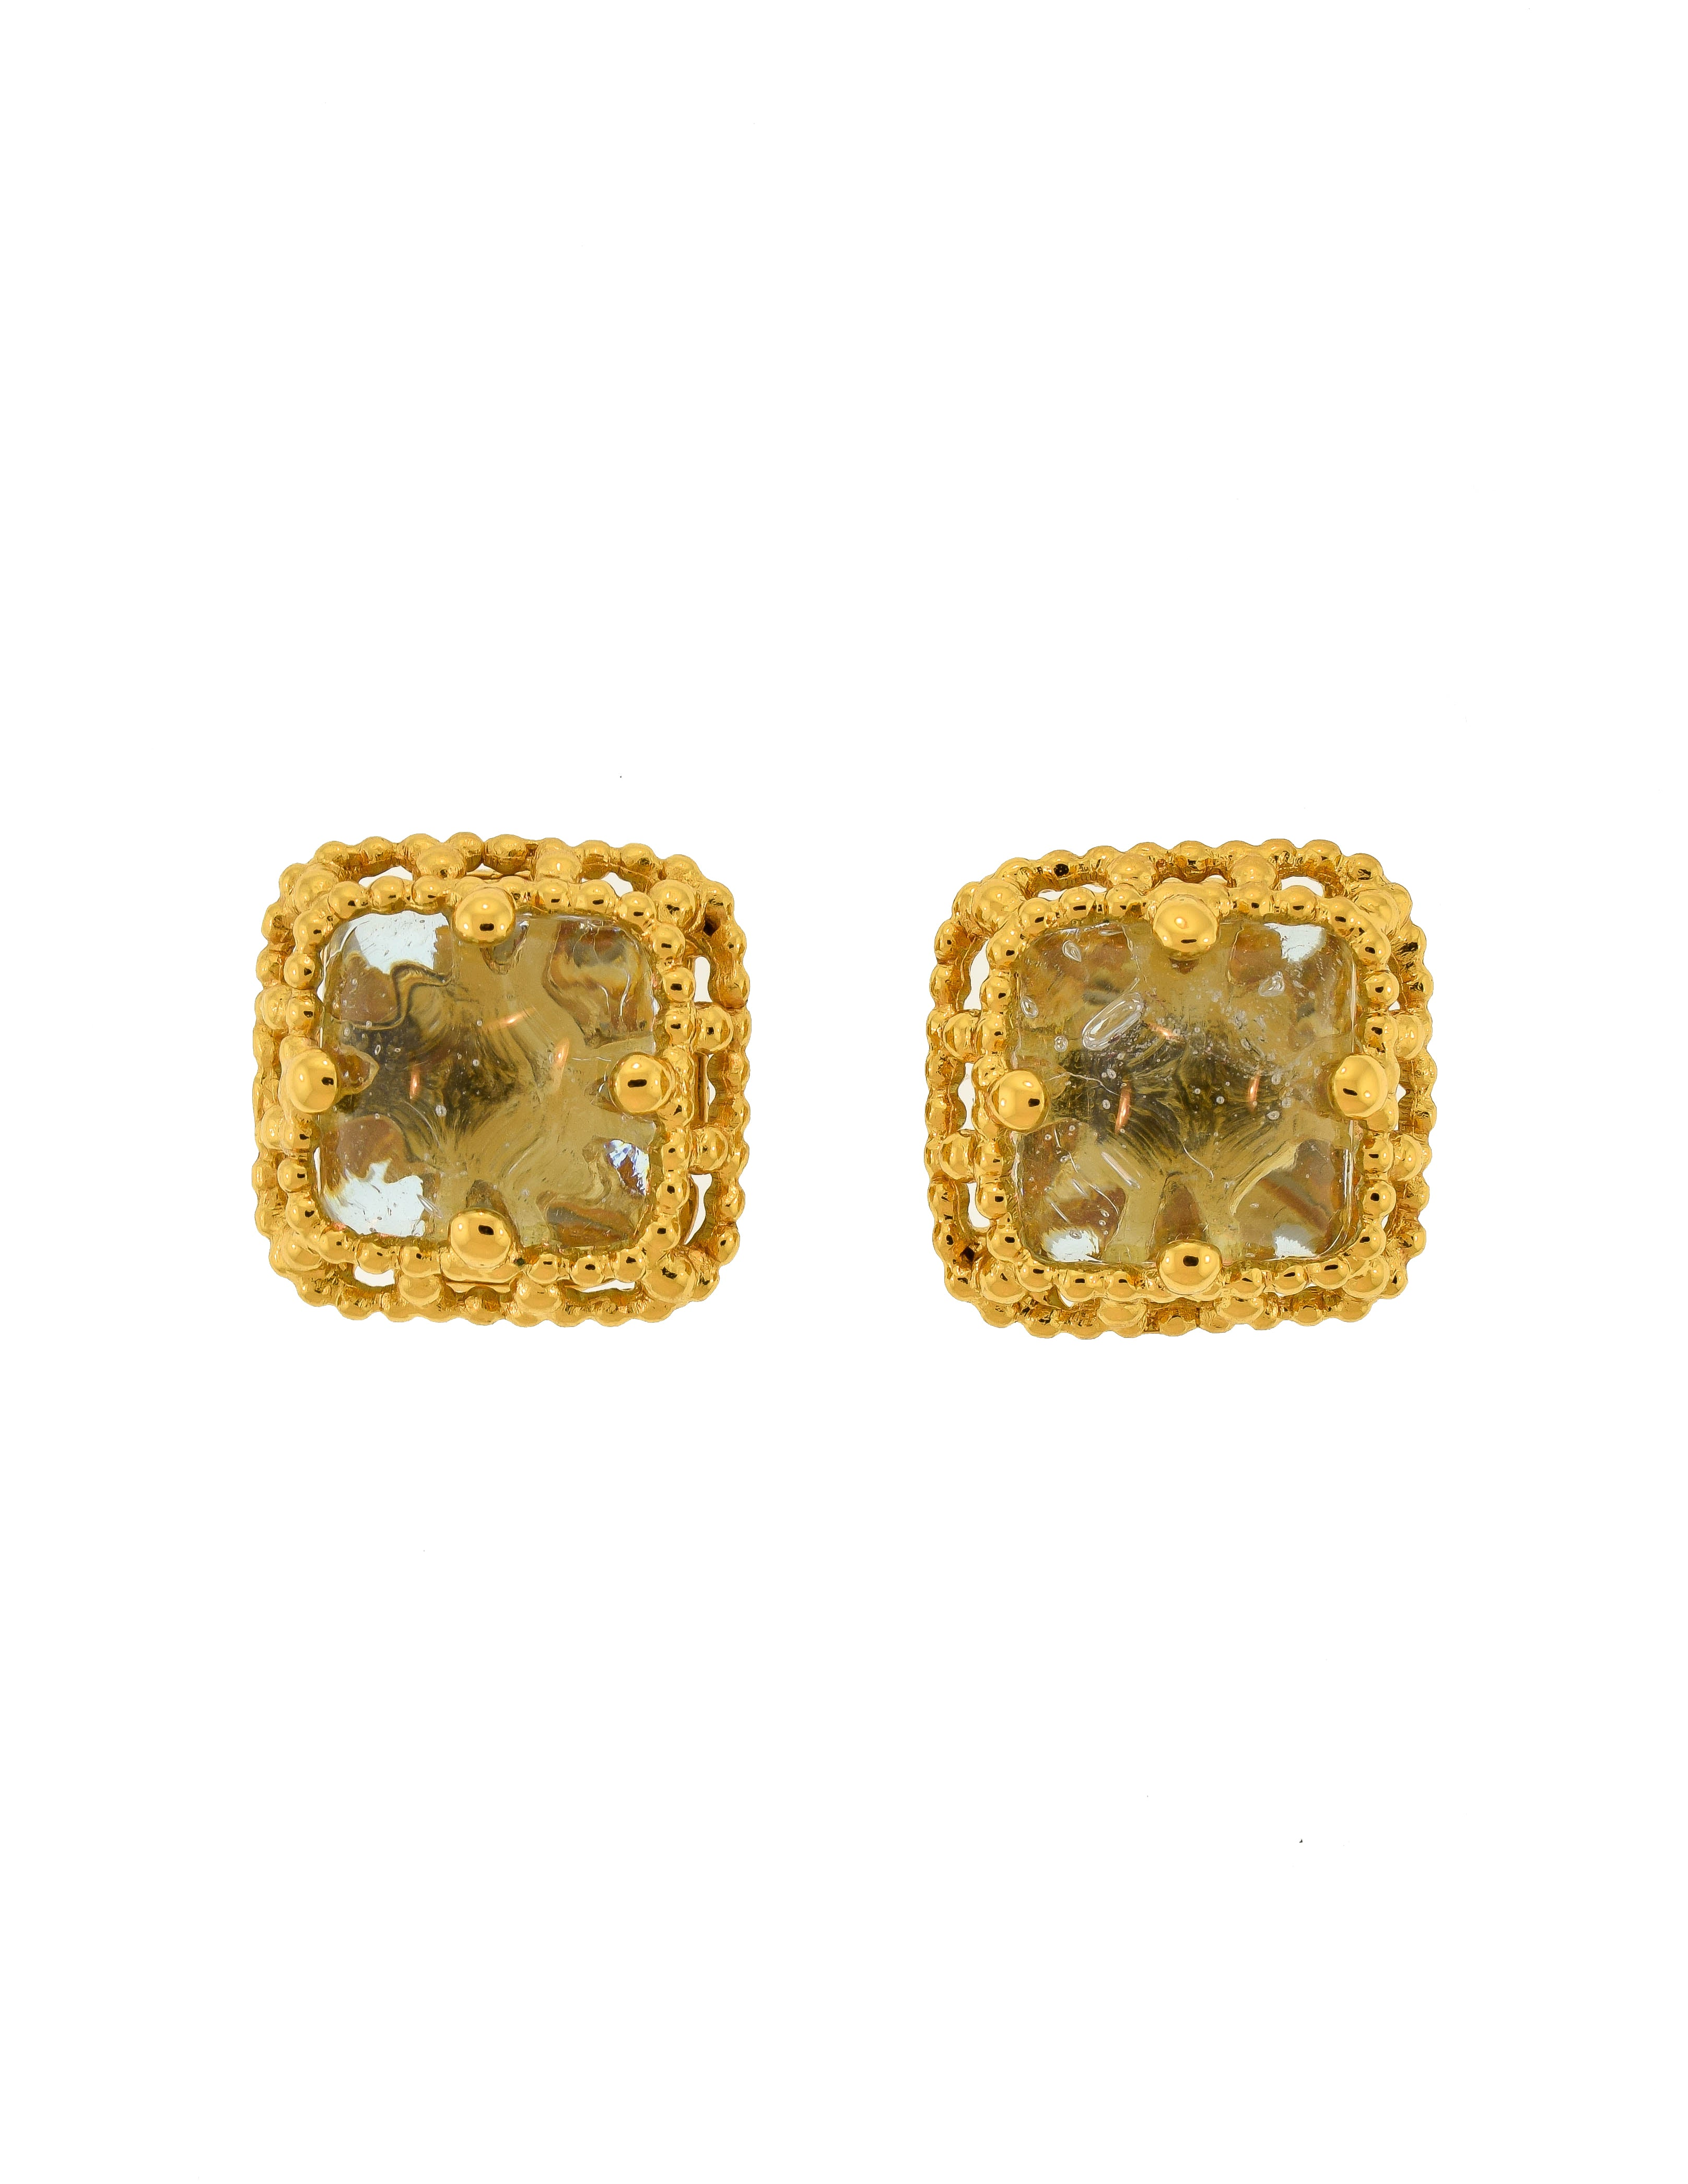 3b005fdc5d5 Yves Saint Laurent Vintage Purple Gripoix Glass Gold Frame Earrings - from  Amarcord Vintage Fashion